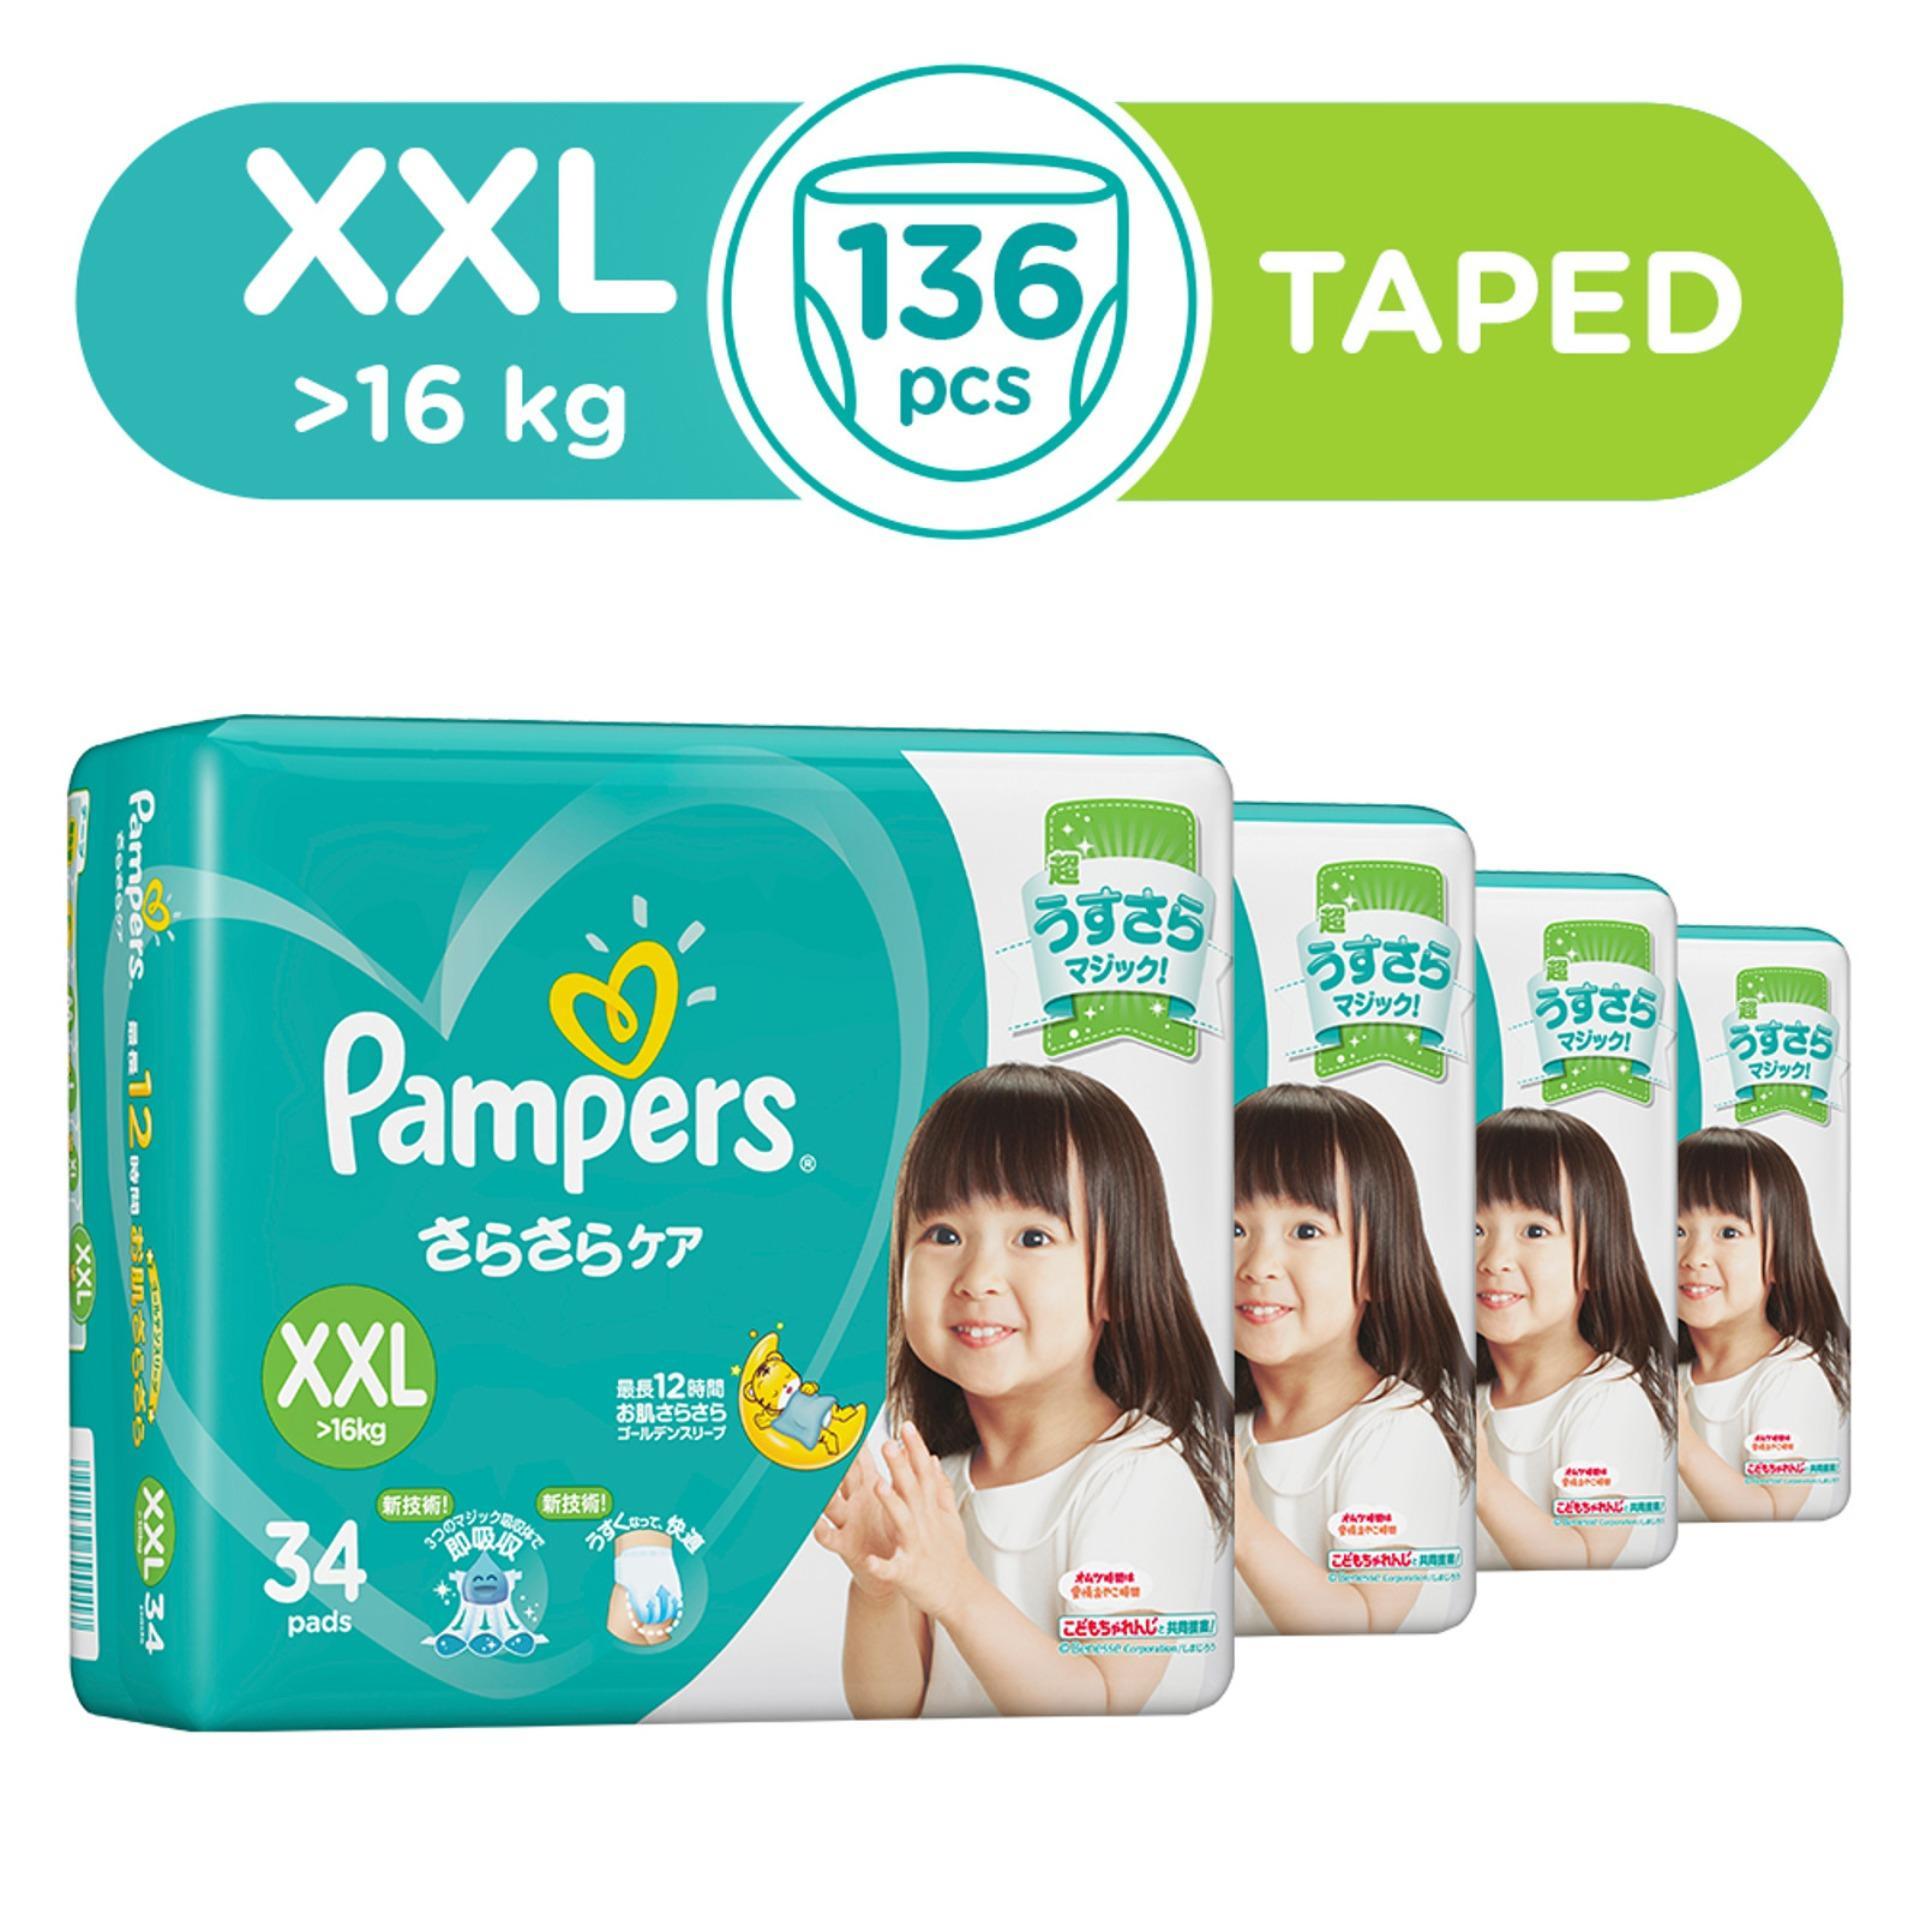 Buy Diapers Online Baby Sweety Popok Bayi Pantz Royal Gold Xl 44 New Pampers Dry Tape Xxl 16 Kg 34 X 4 Packs 136 Pcs